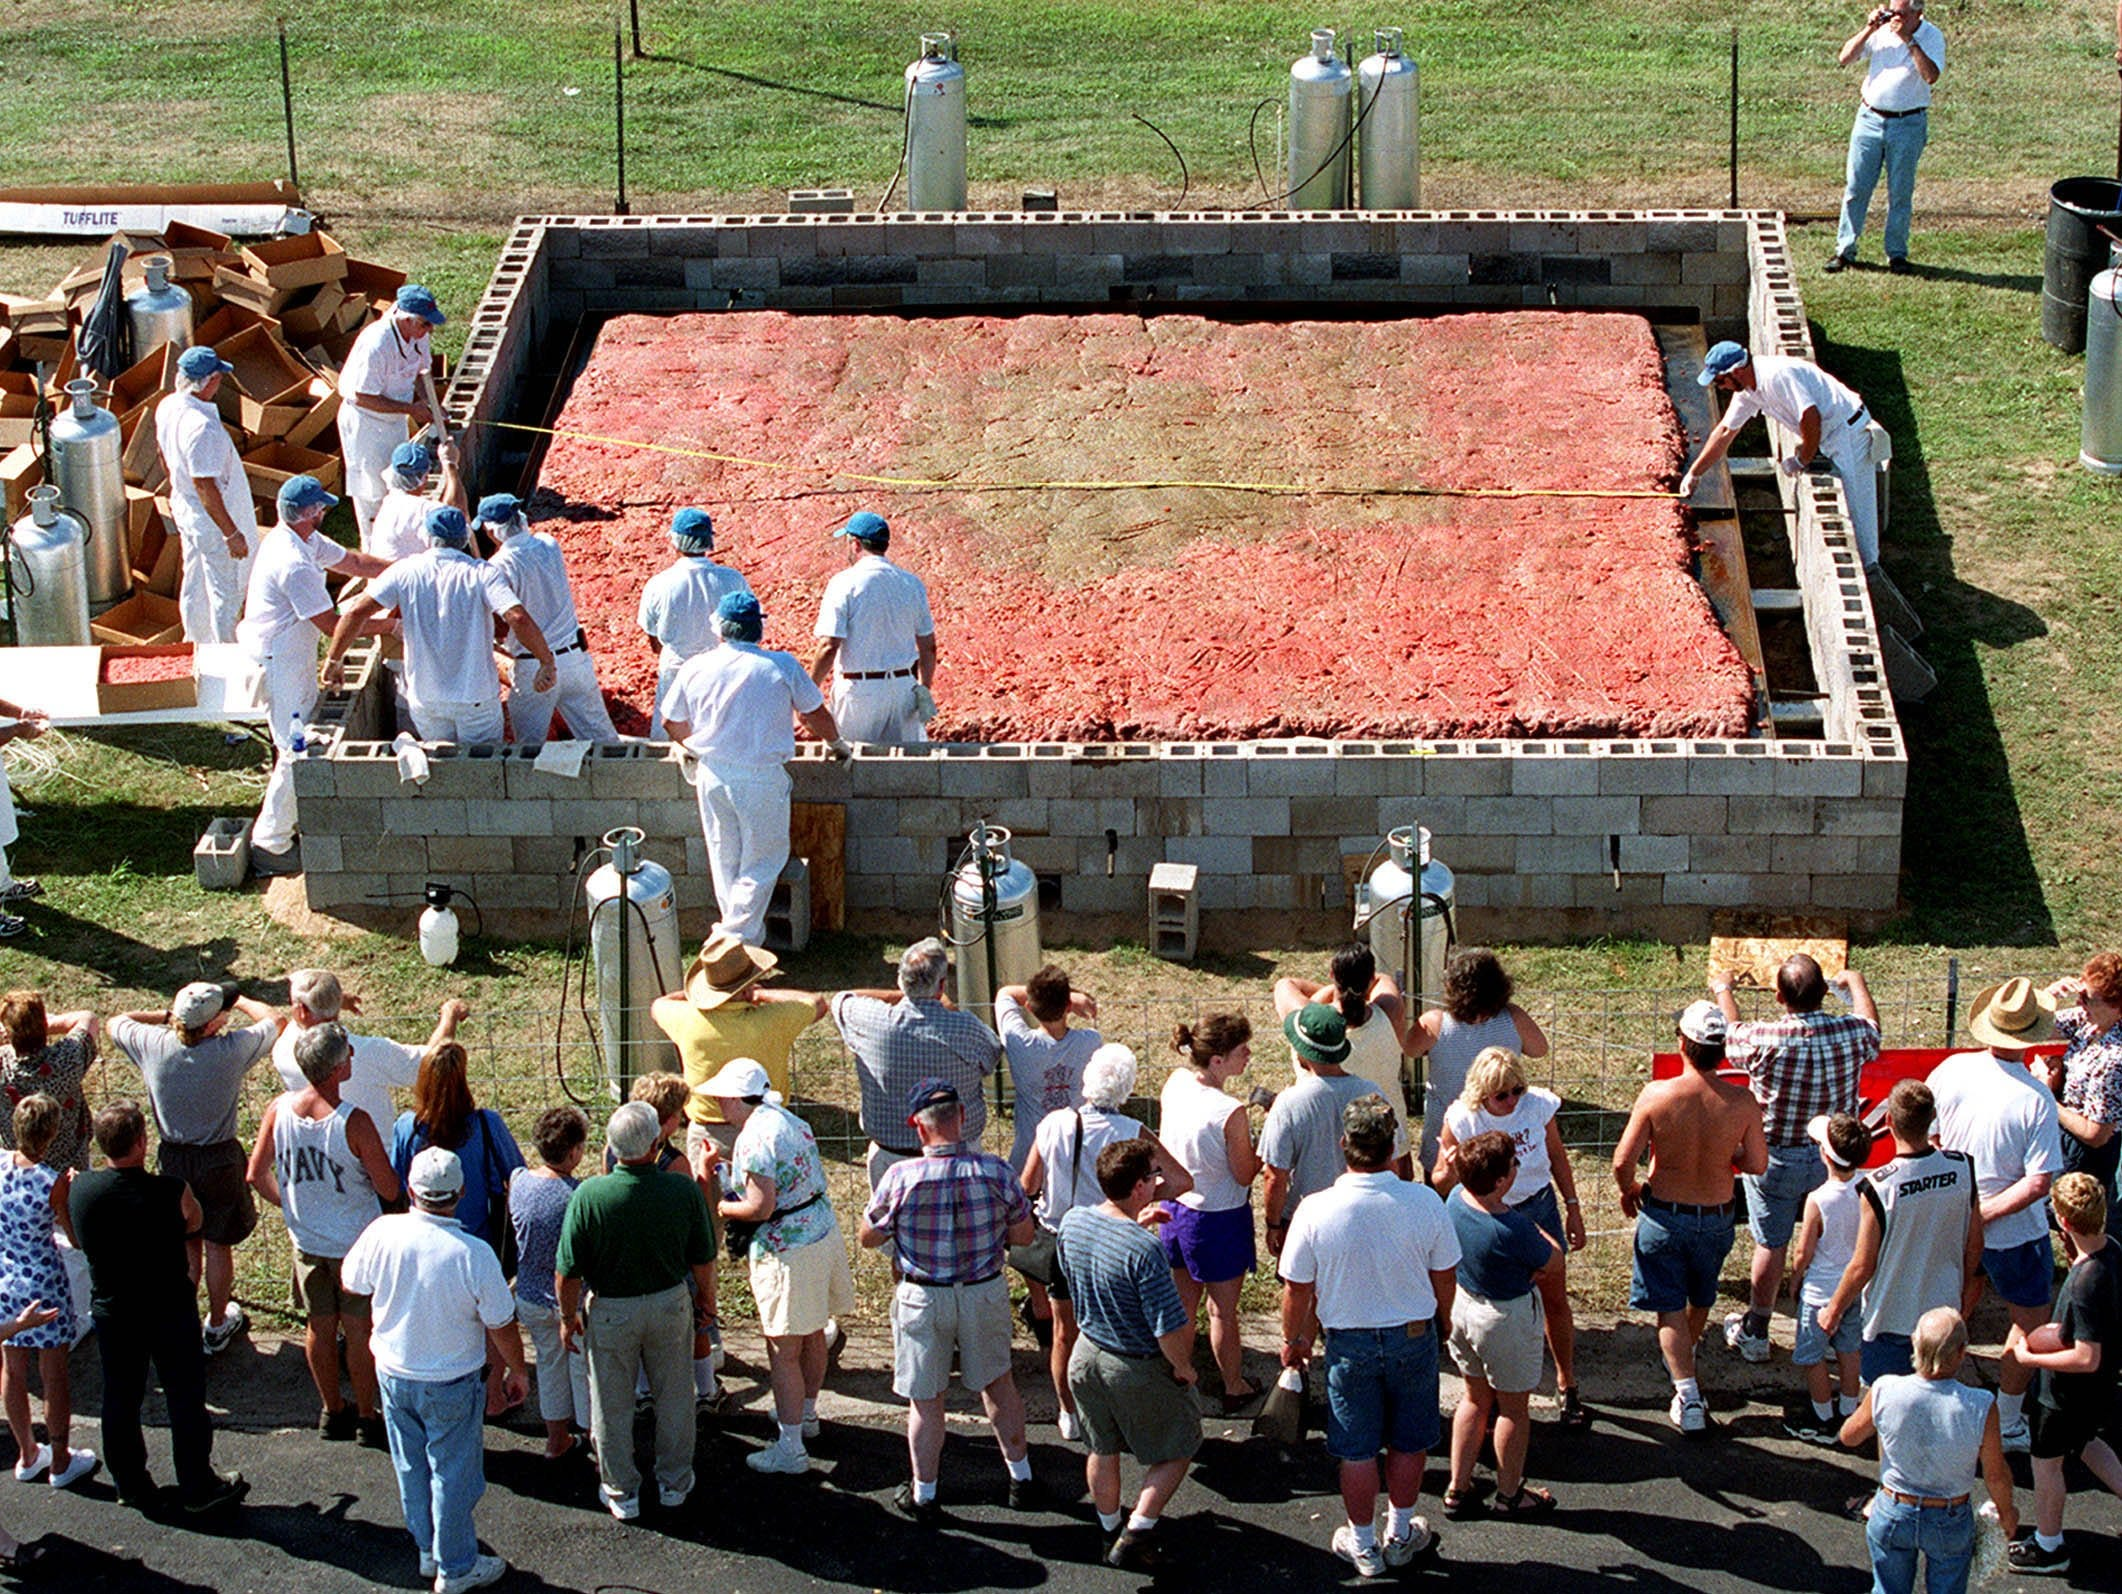 2001: A crowd gathers as volunteers work on a 8,266-pound hamburger Saturday at Burger Fest in Seymour.